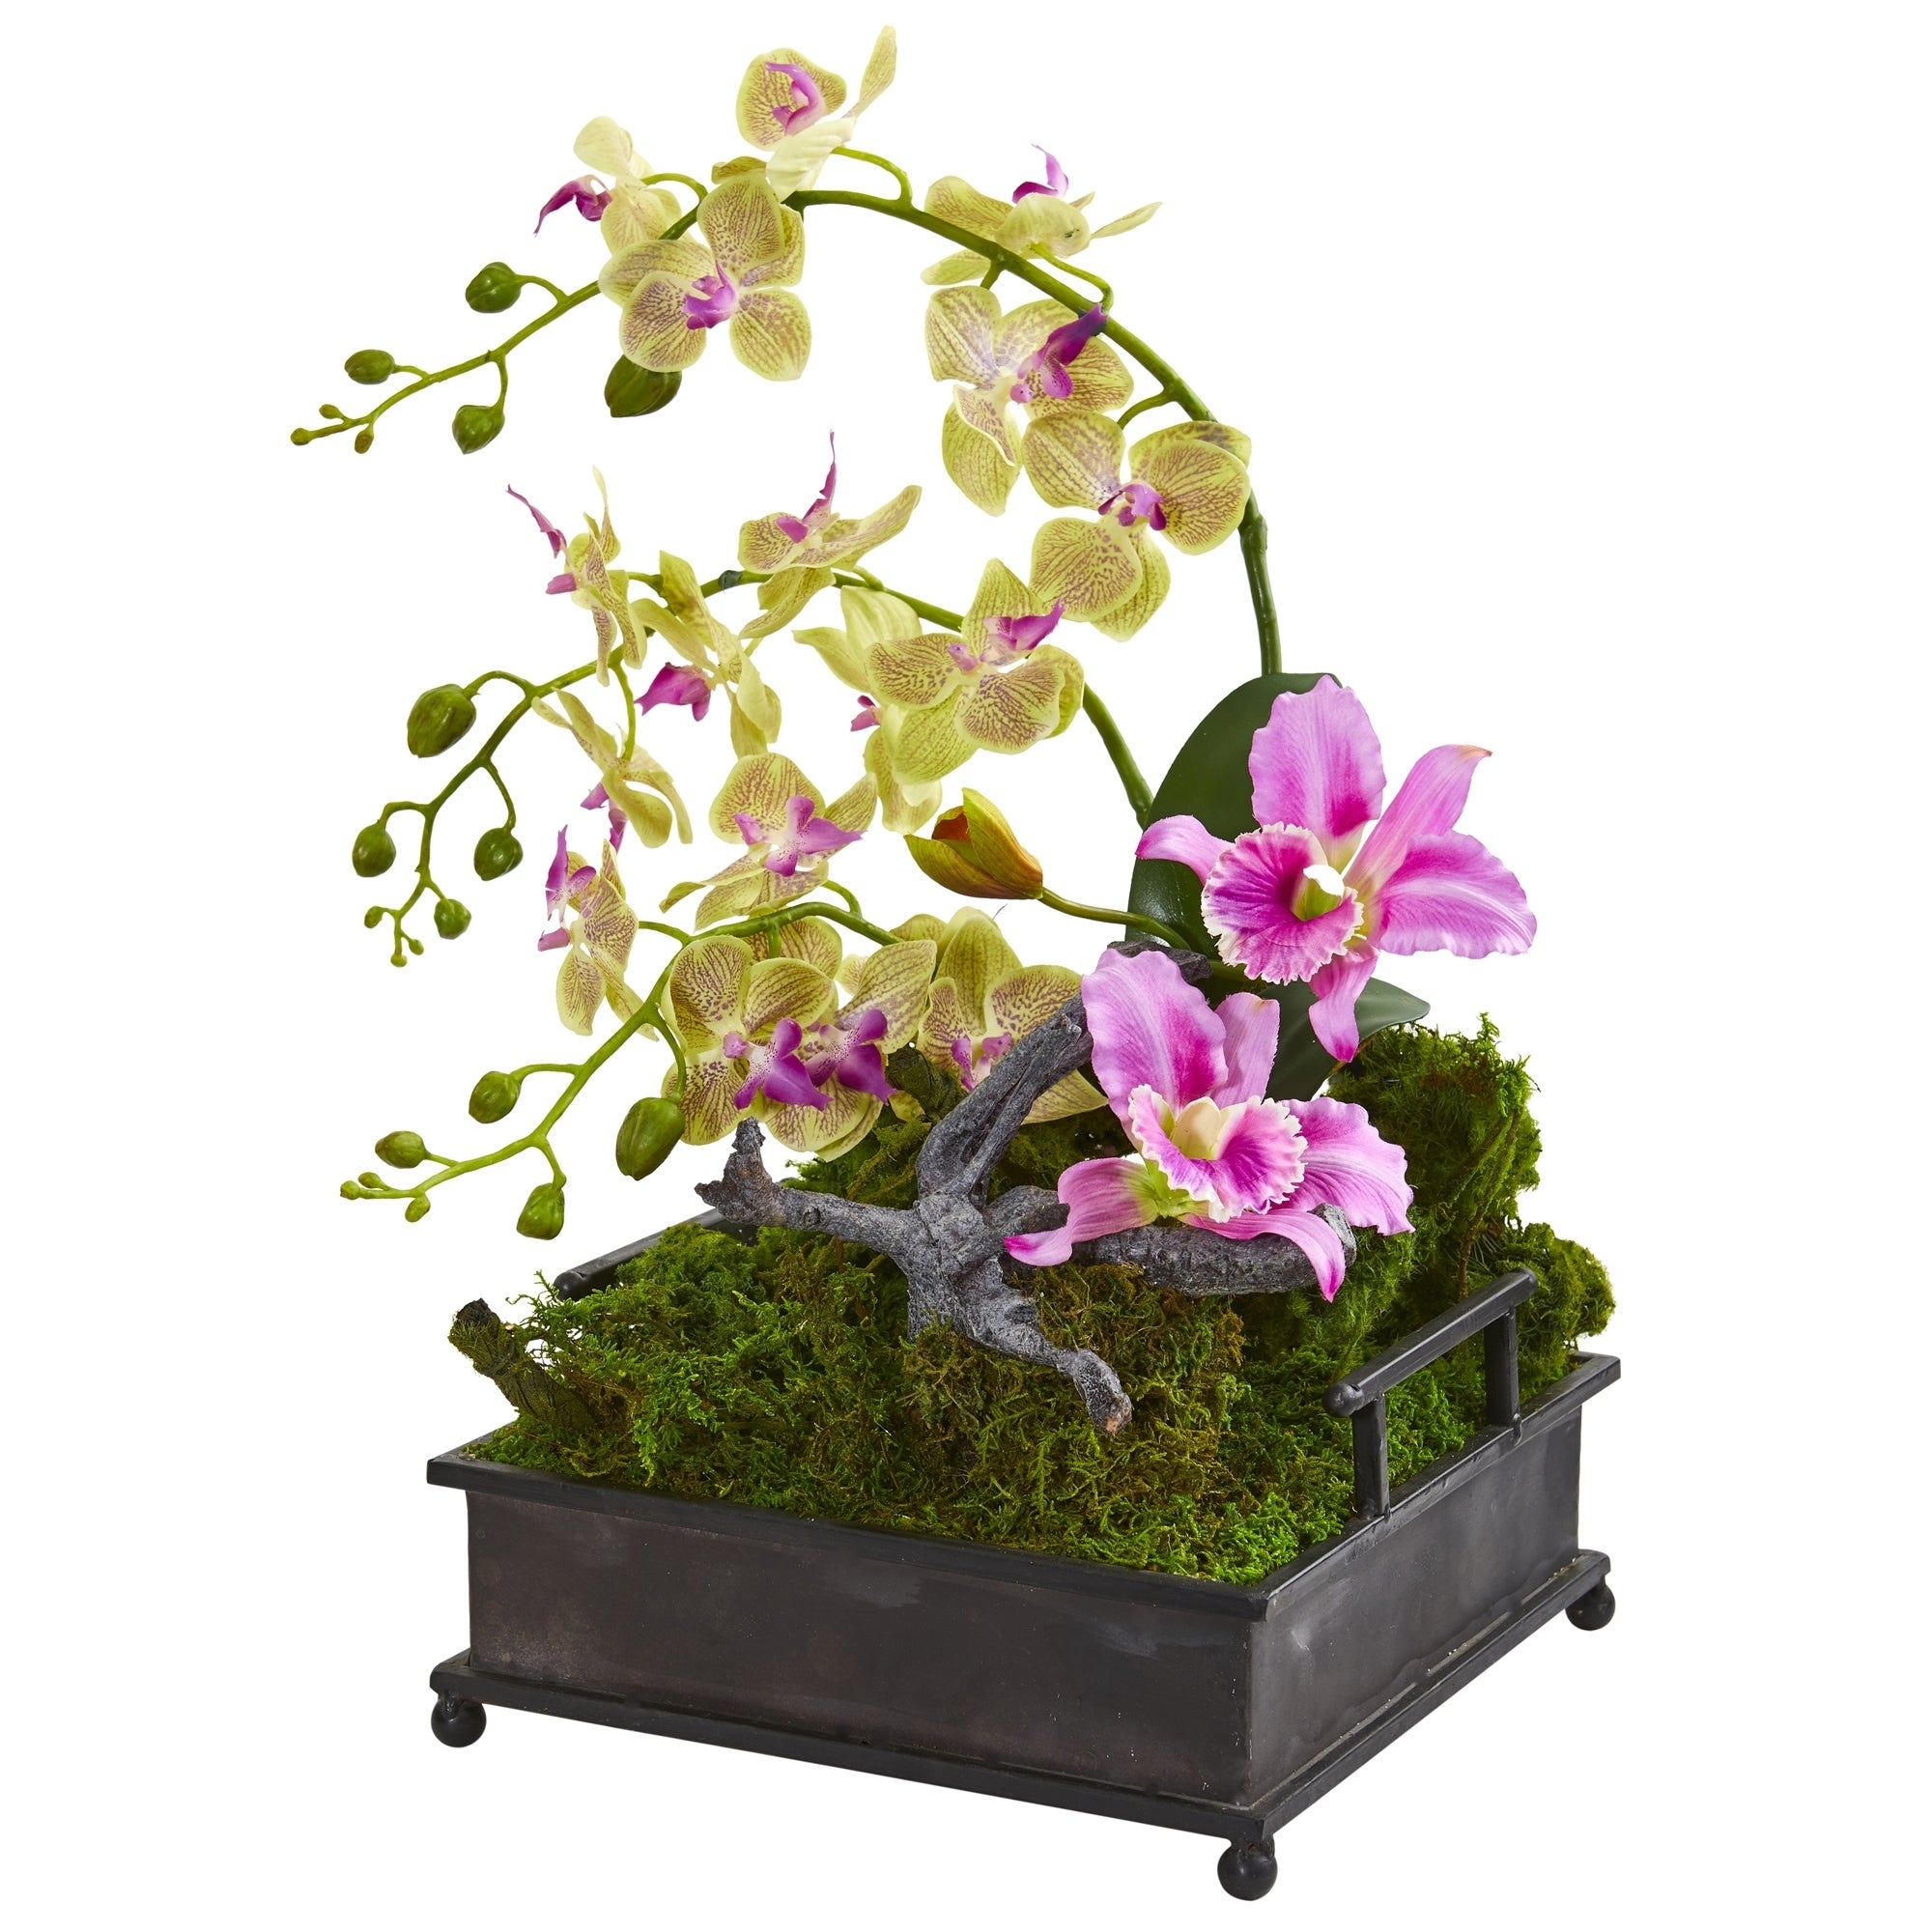 Mixed Orchid Artificial Arrangement in Decorative Tray